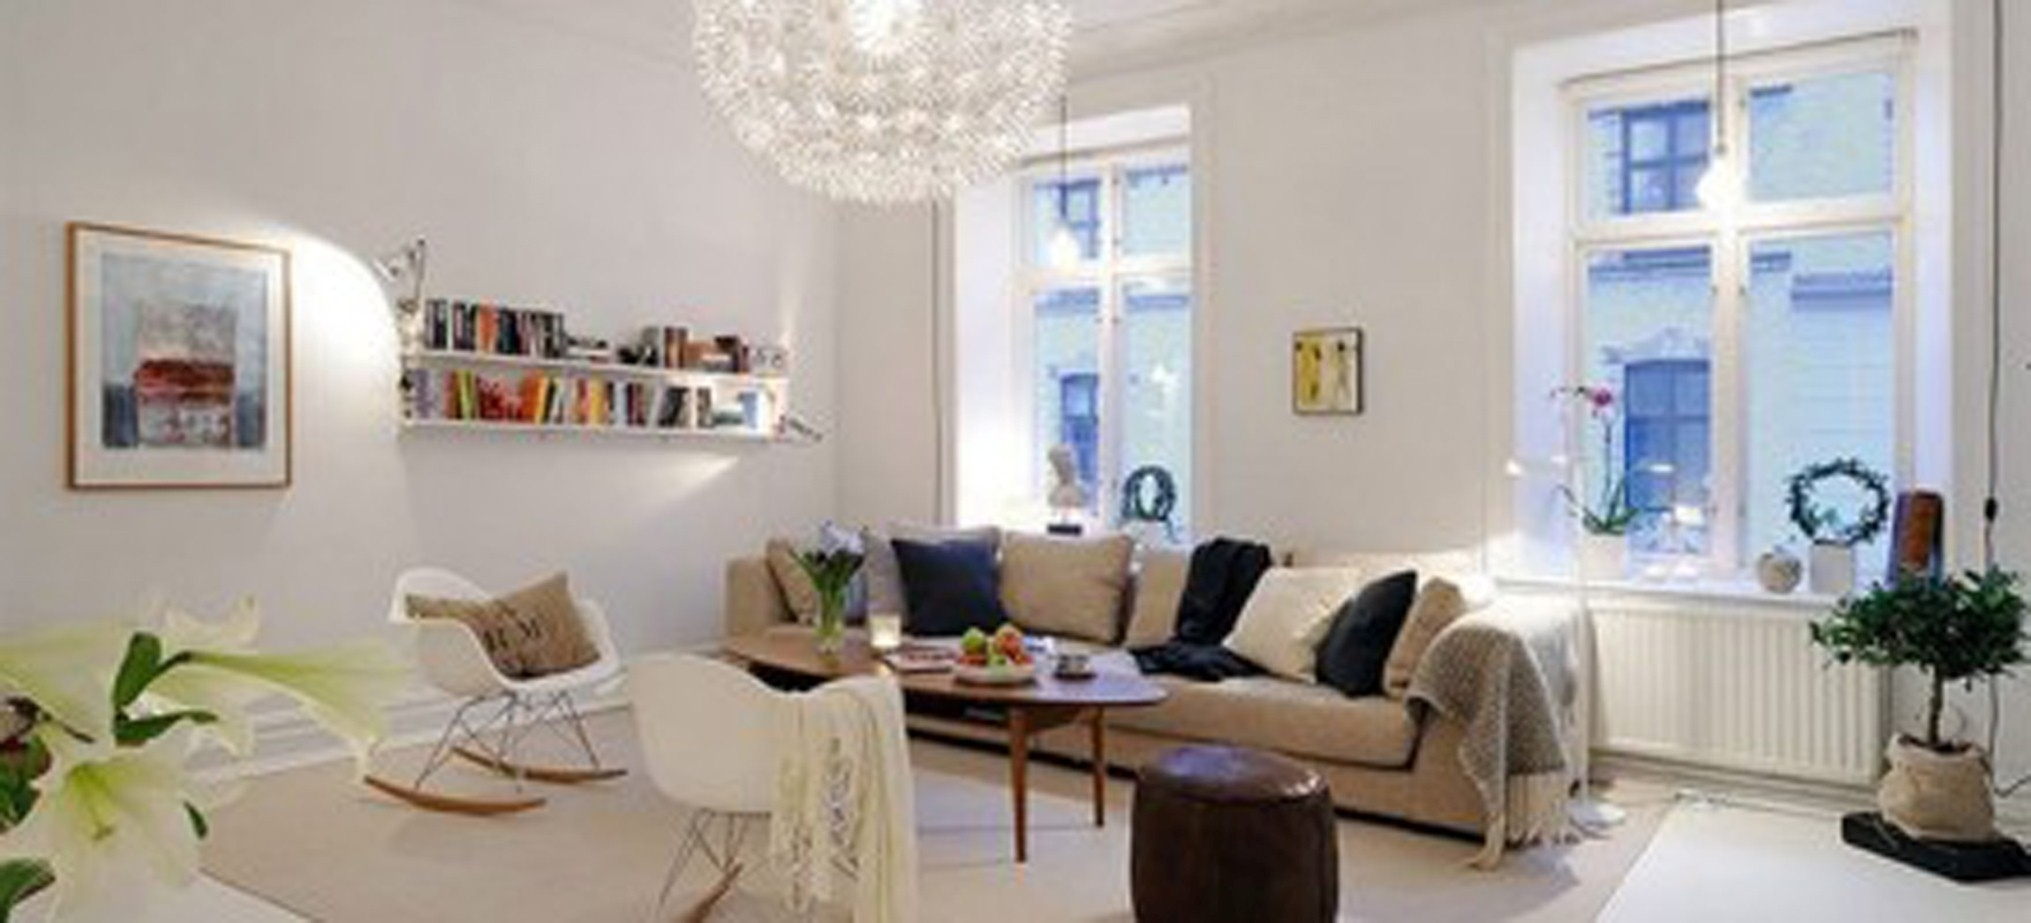 Modern Living Space Design Ideas With Terrific Glossy Rounded Lamp Also Smart Modern Books Shelf Decor (Image 29 of 30)